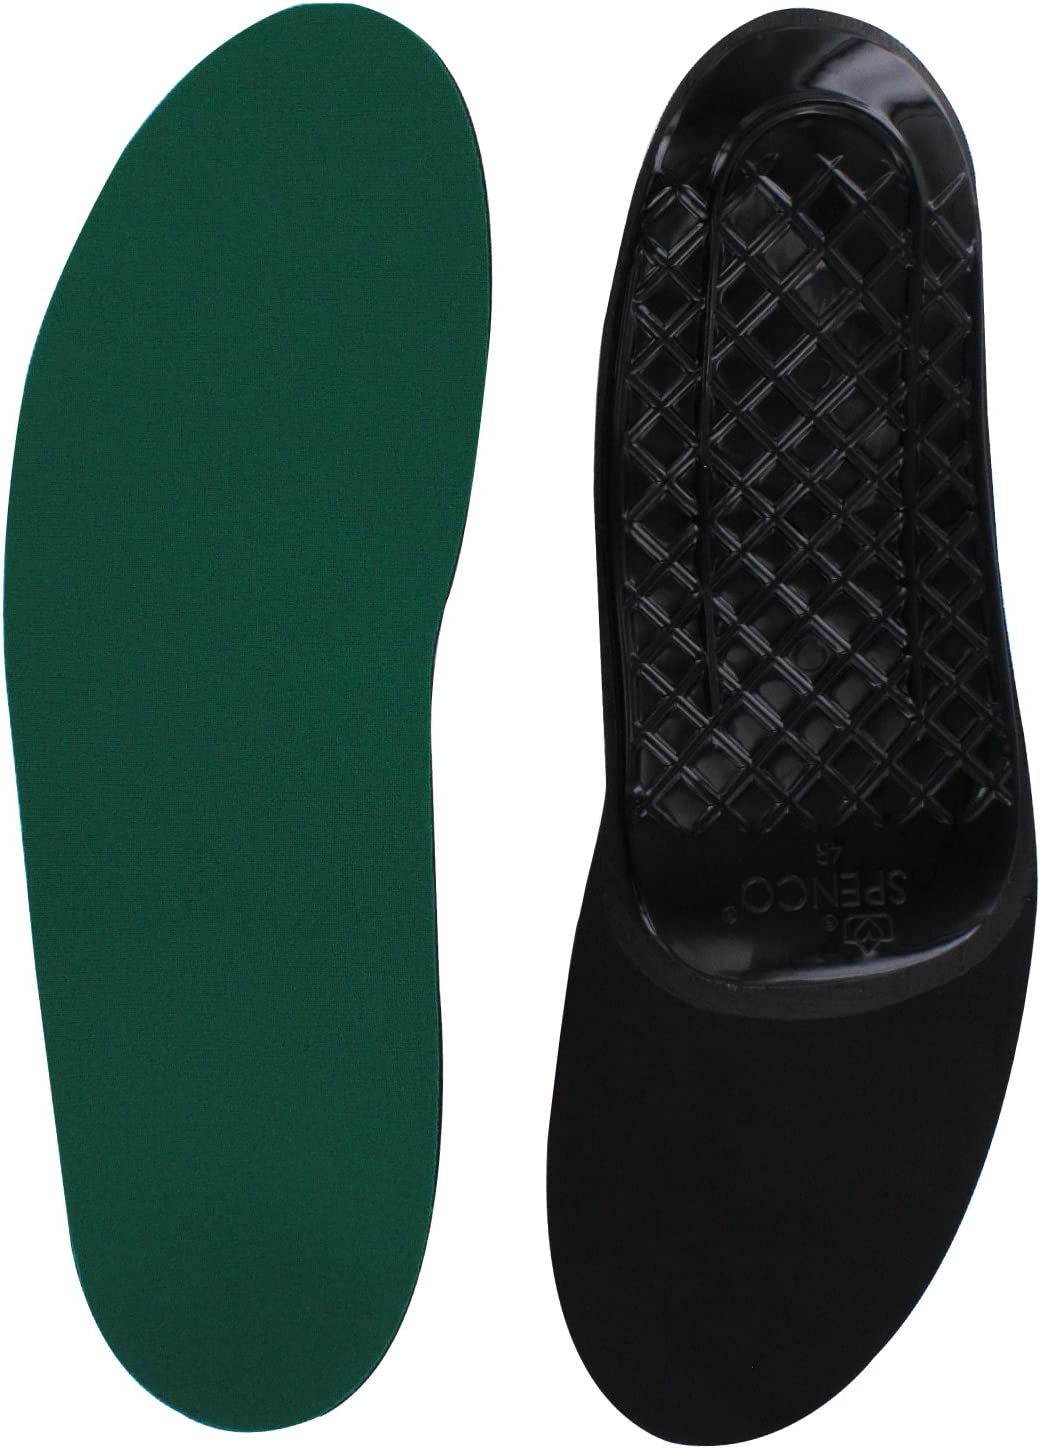 B000FPKTD8 Spenco Rx Orthotic Arch Support Full Length Shoe Insoles, Men's 14-15.5 71IJLTQ9A5L